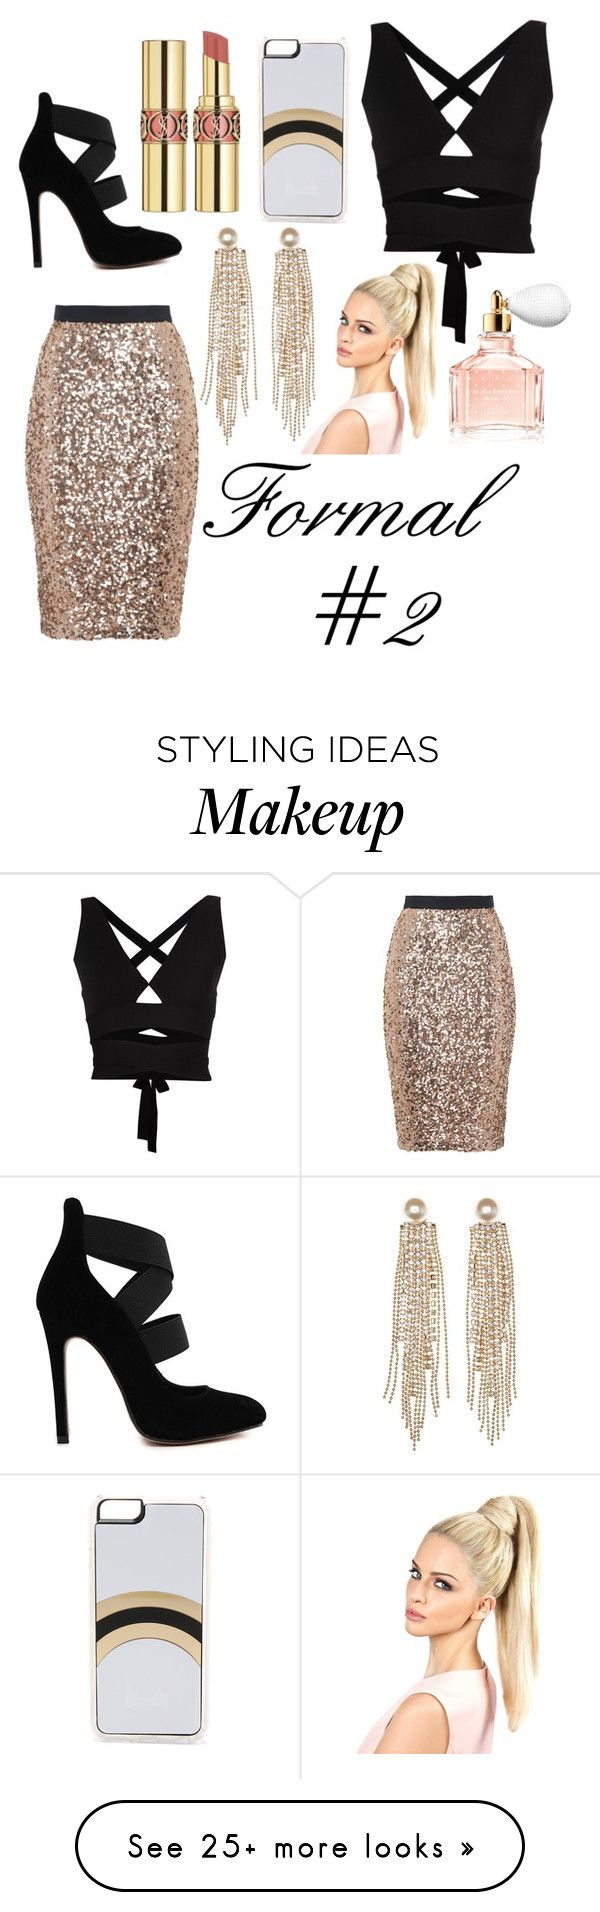 """"" by lhaddock on Polyvore featuring Mode, French Connection, Proenza Schouler, Guerlain, Zero Gravity, Charlotte Russe, Yves Saint Laurent, women's clothing, women's fashion und women"